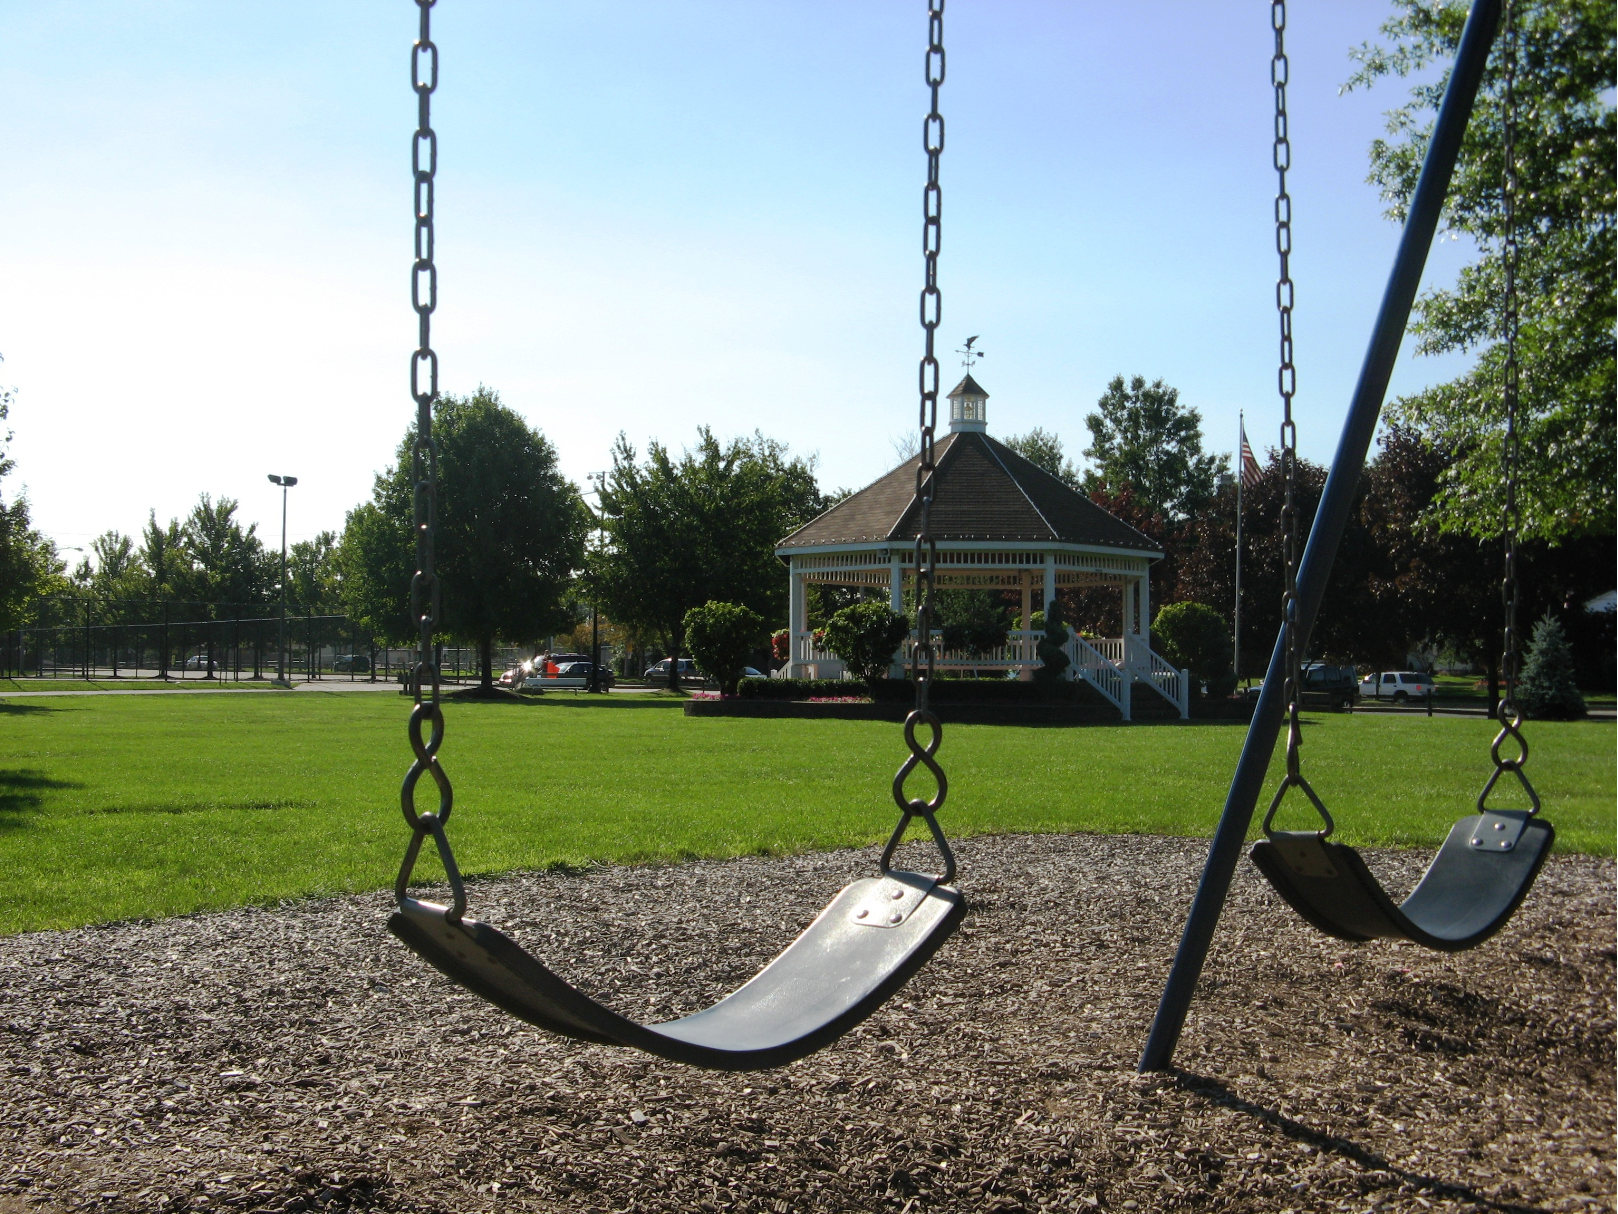 Photo of City Park facing southeast with swings and Gazebo in frame